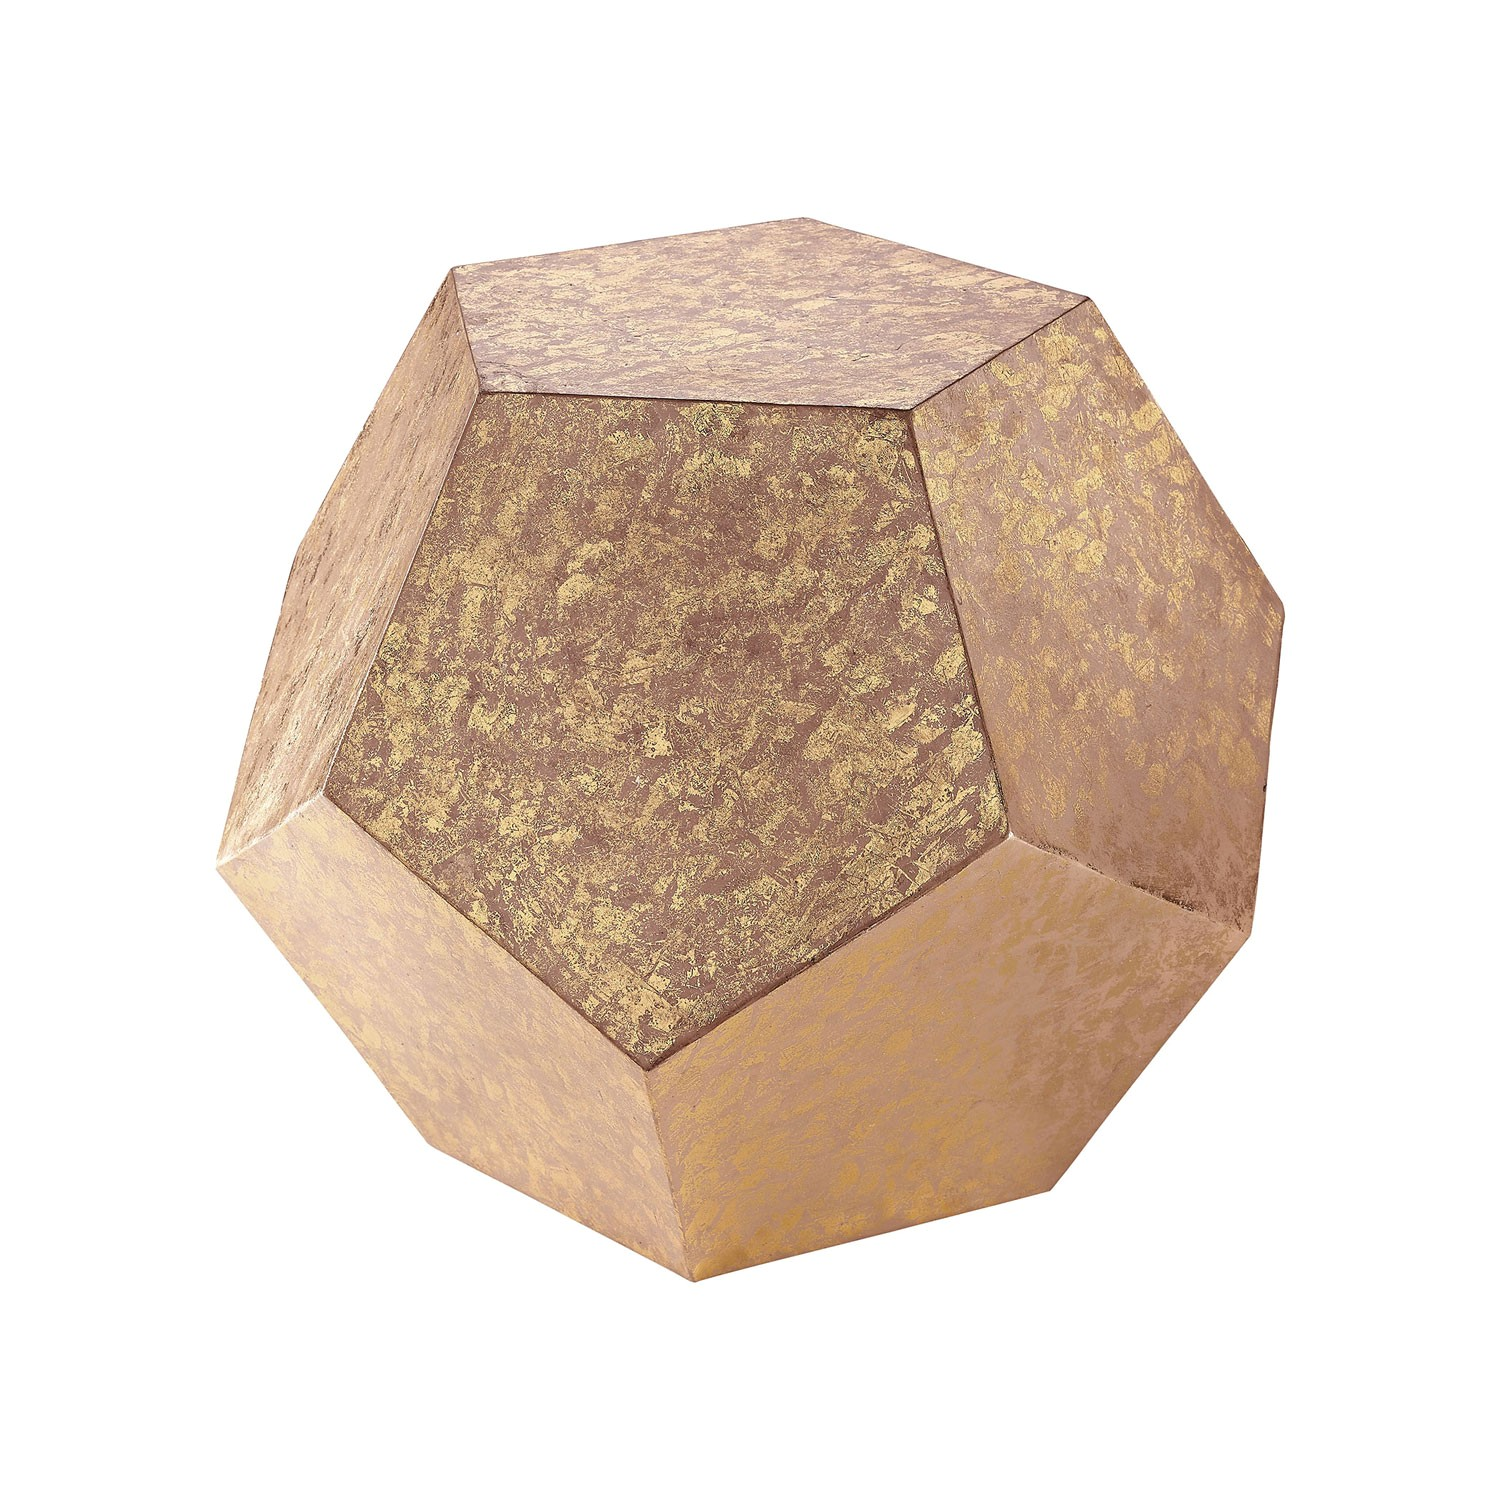 sterling industries 351 10213 gold dodecahedron cube 1736707